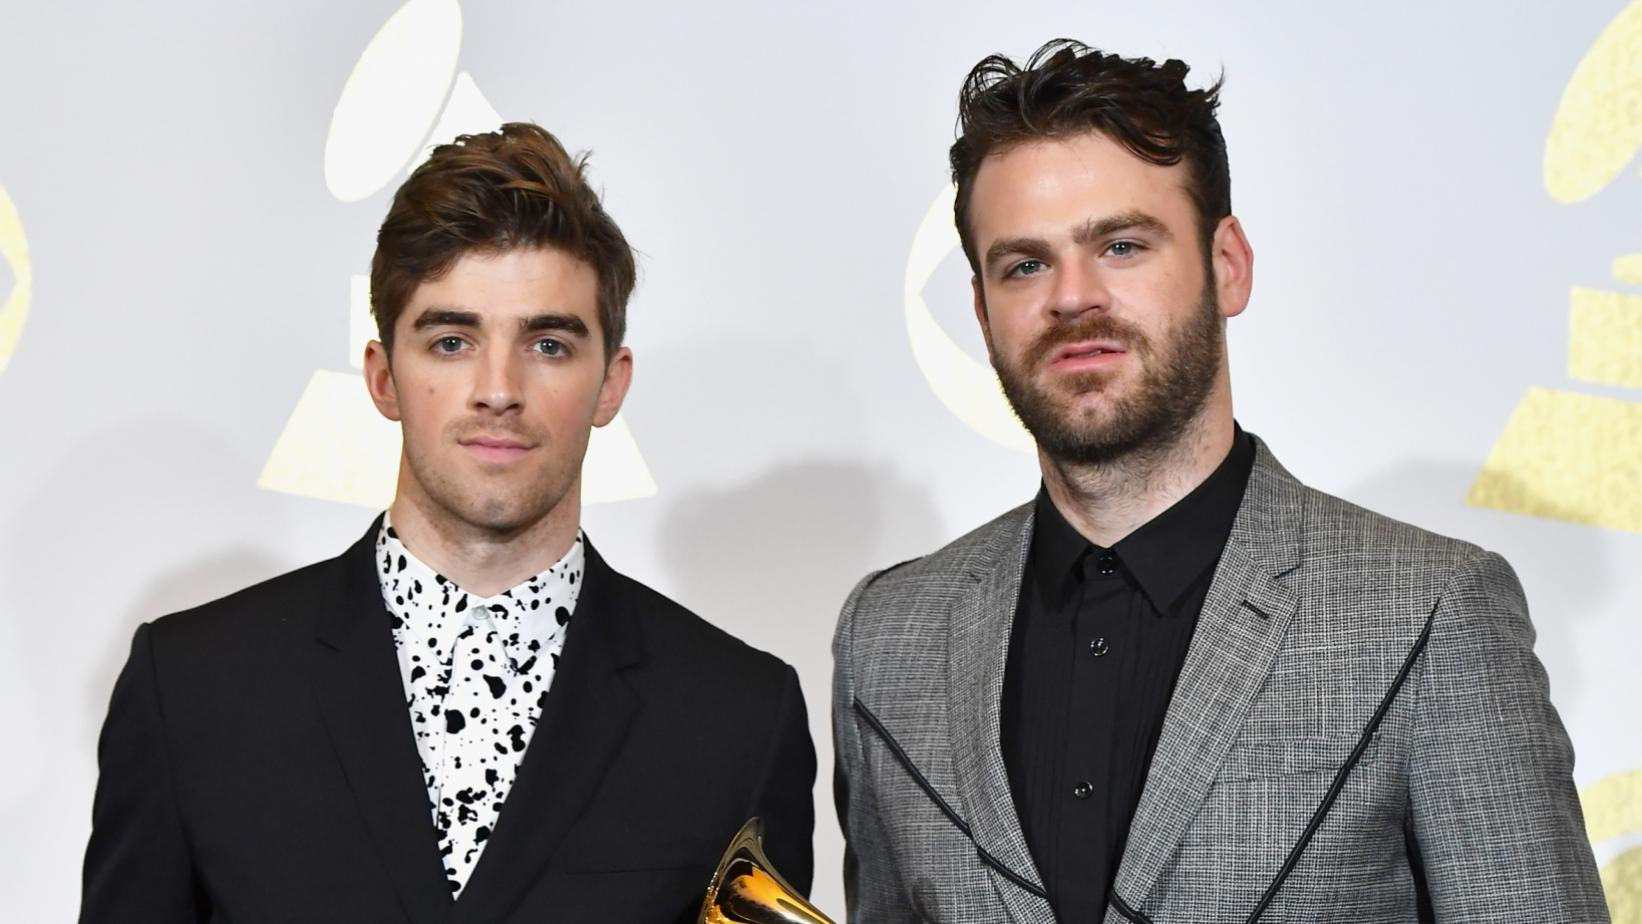 The Chainsmokers at the 59th GRAMMY Awards in 2017